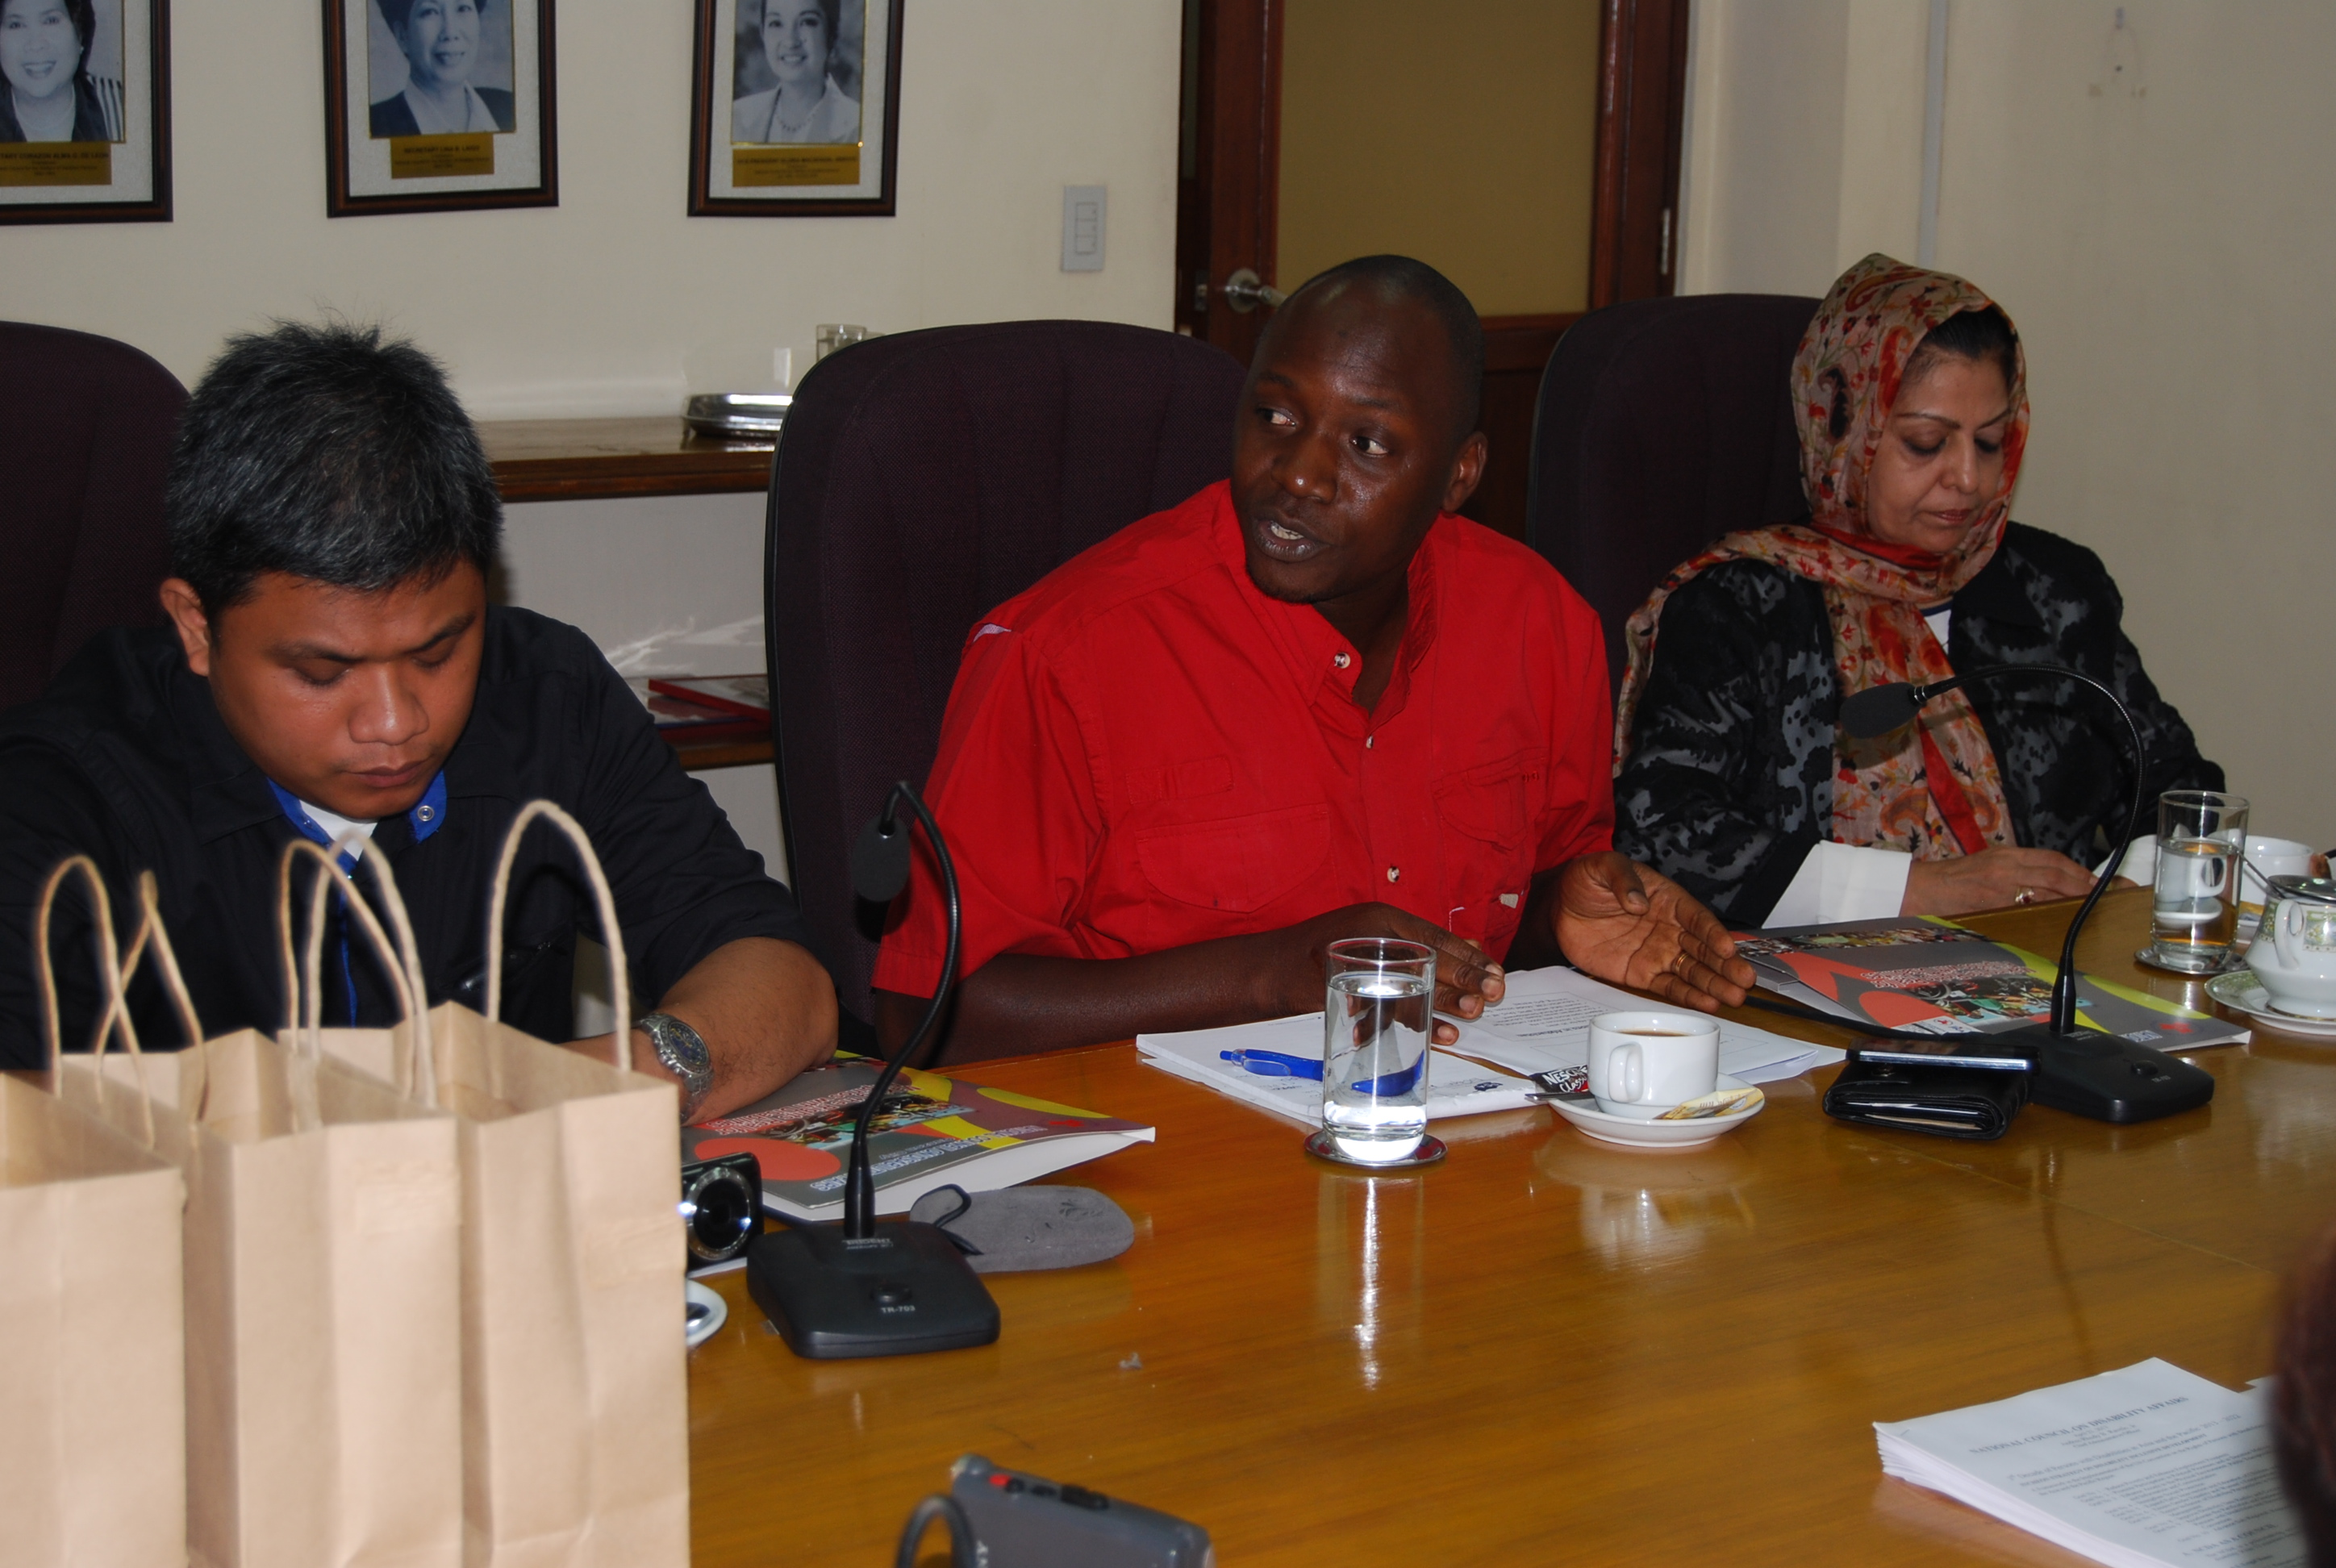 MOLSAMD officials listening intently to Usec Taradji